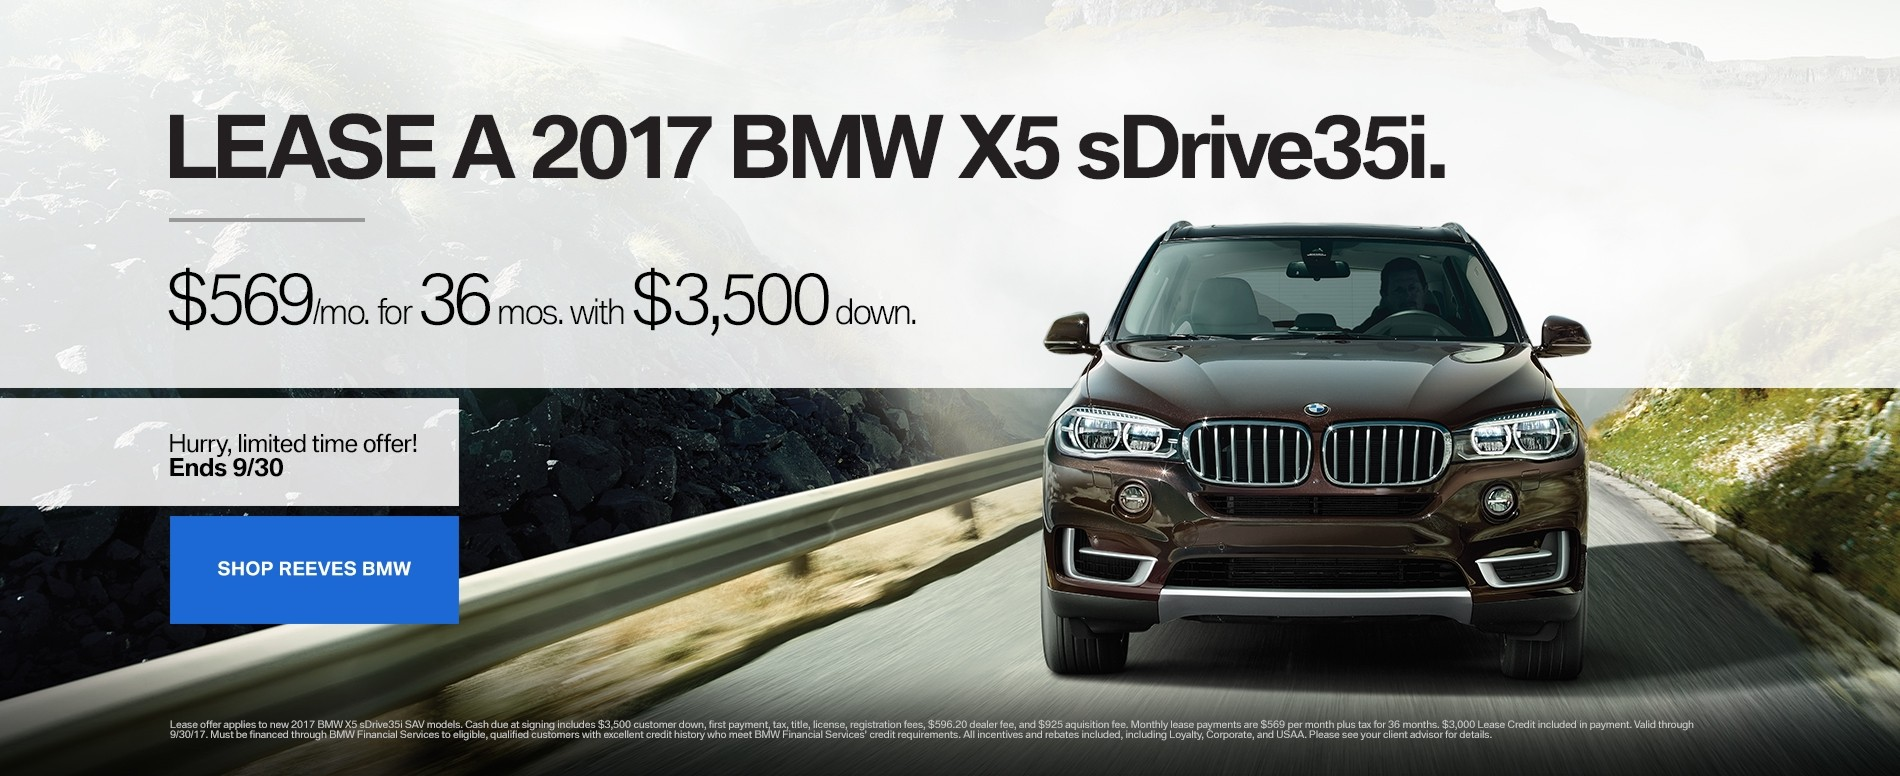 Reeves BMW Tampa  BMW Dealership  Tampa BMW